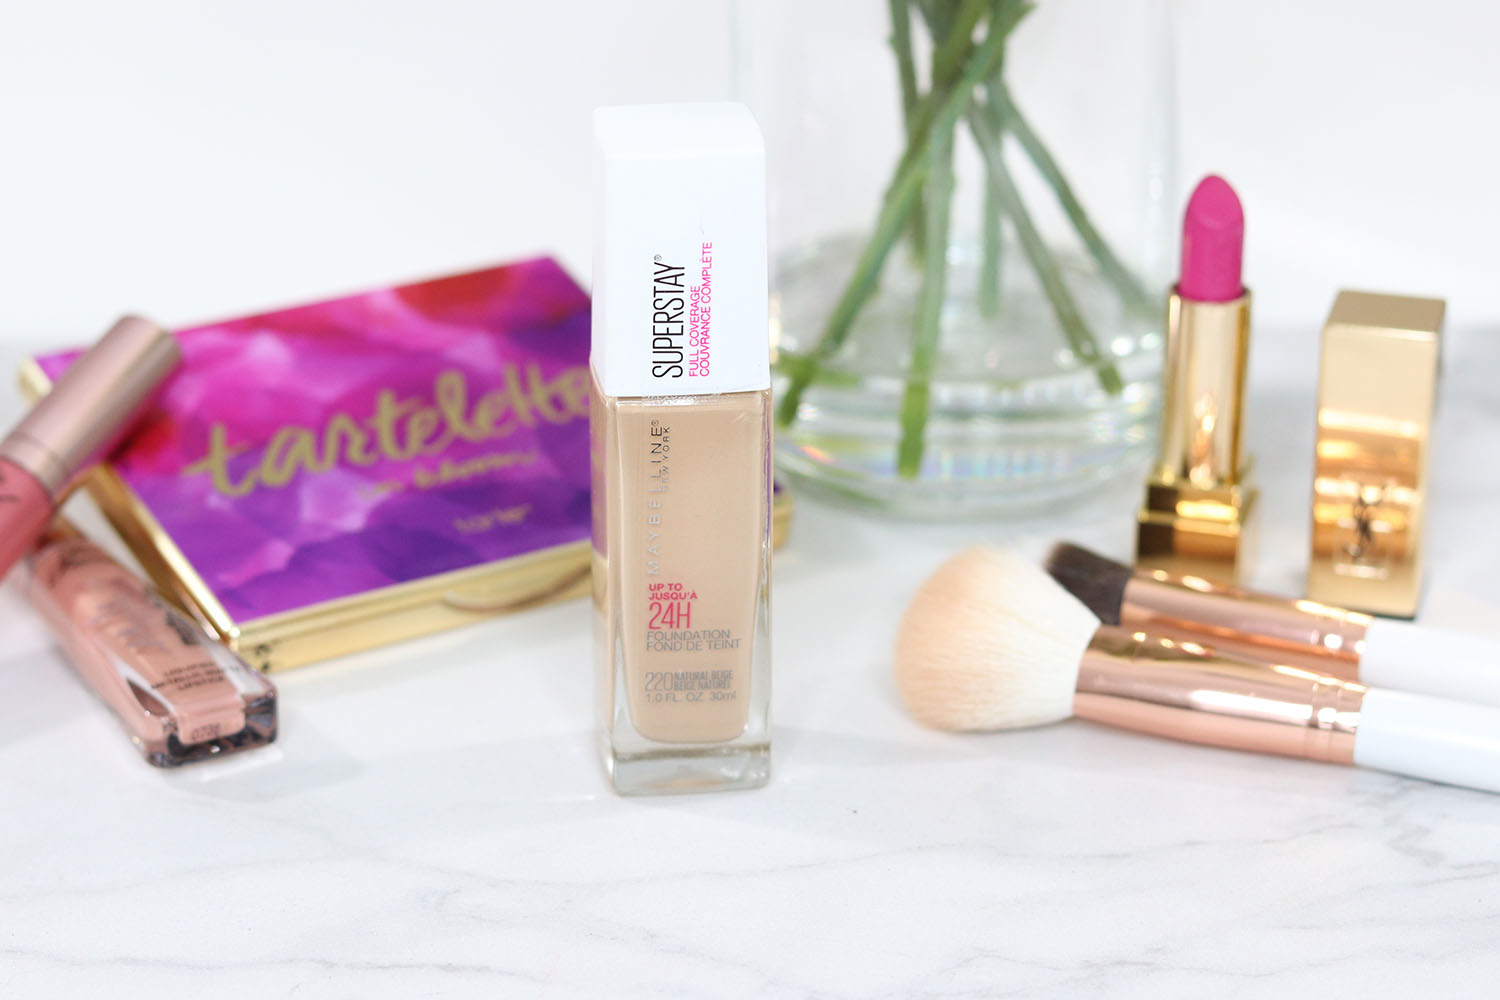 maybelline superstay foundation review and wear test on brighter darling | maybelline superstay foundation shade 220 | maybelline superstay foundation wear test